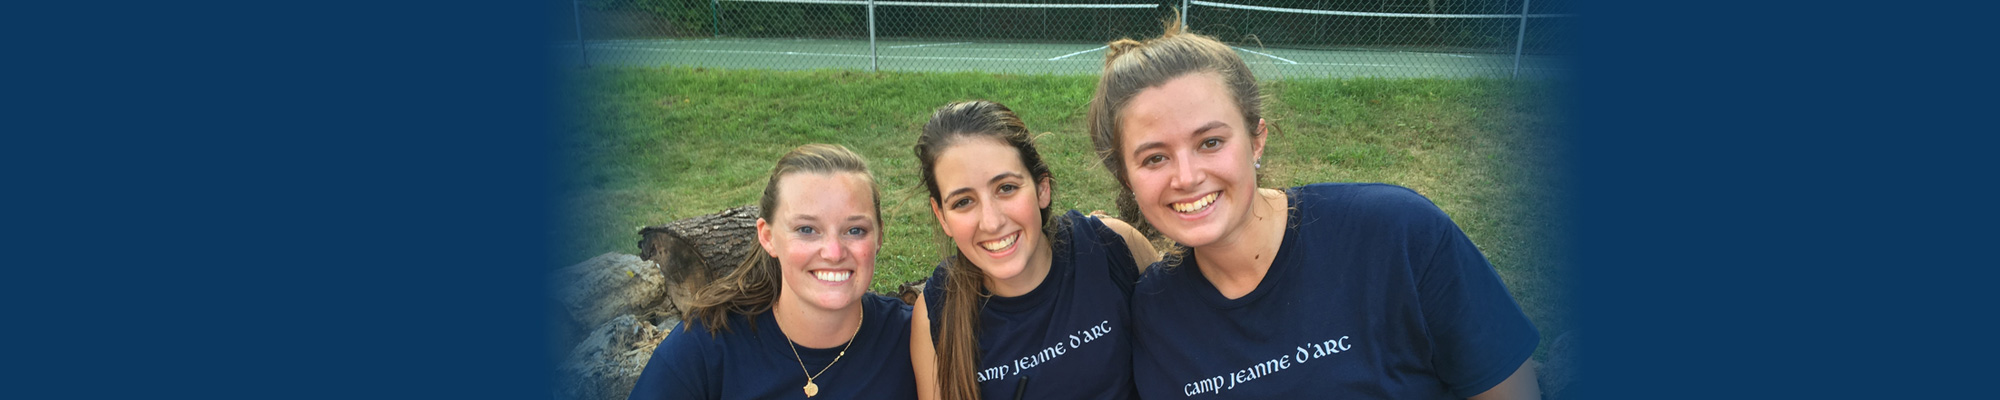 Three girls smiling, while attending a leadership camp for high school students in the Adirondack Mountains